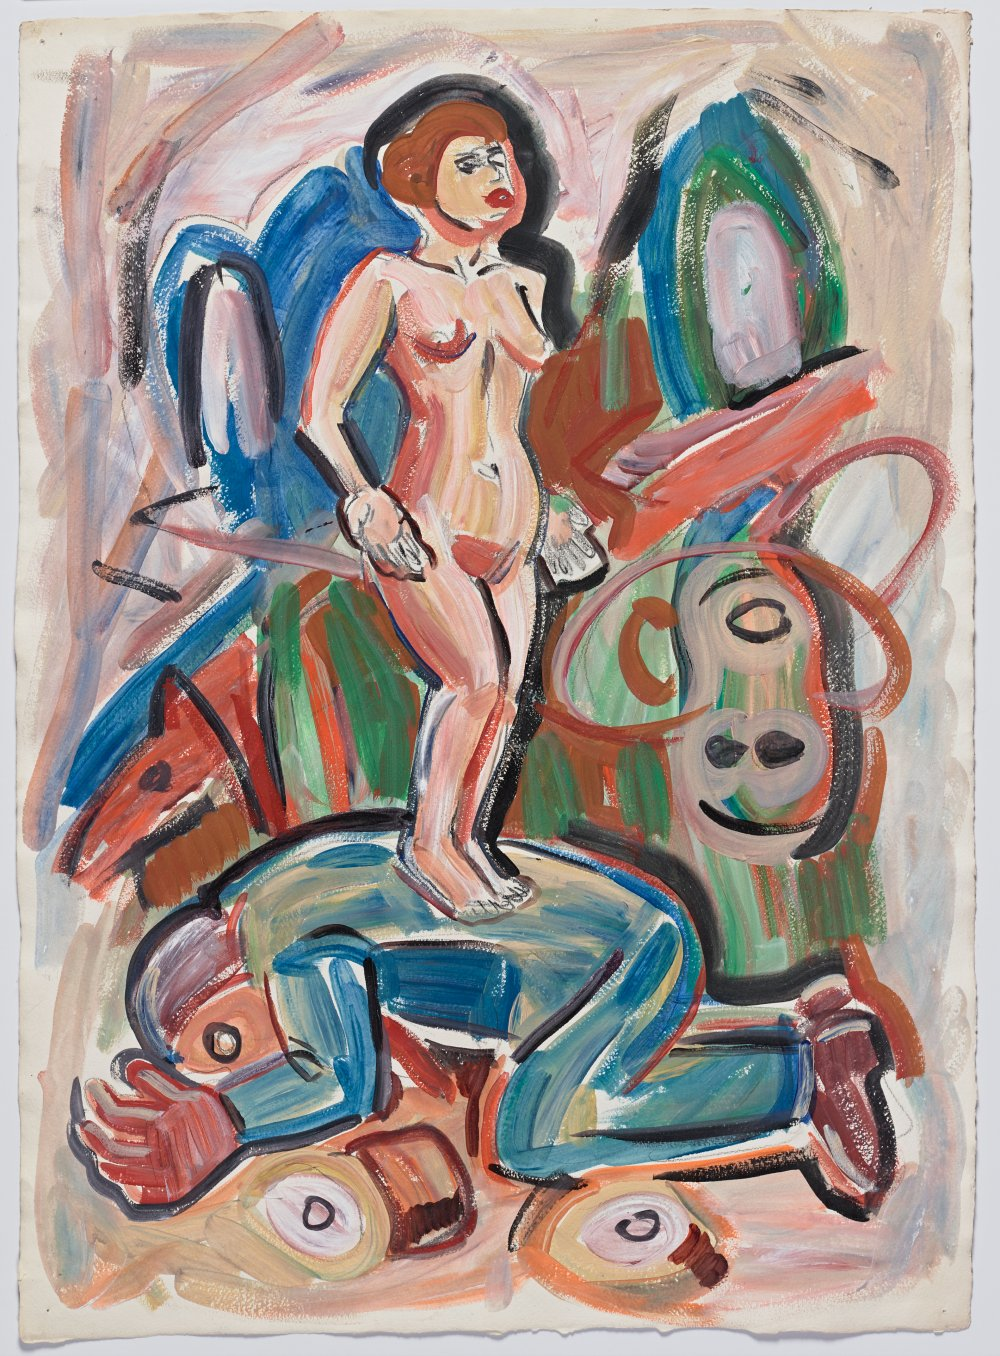 Untitled (Nude Woman on Lying Man)